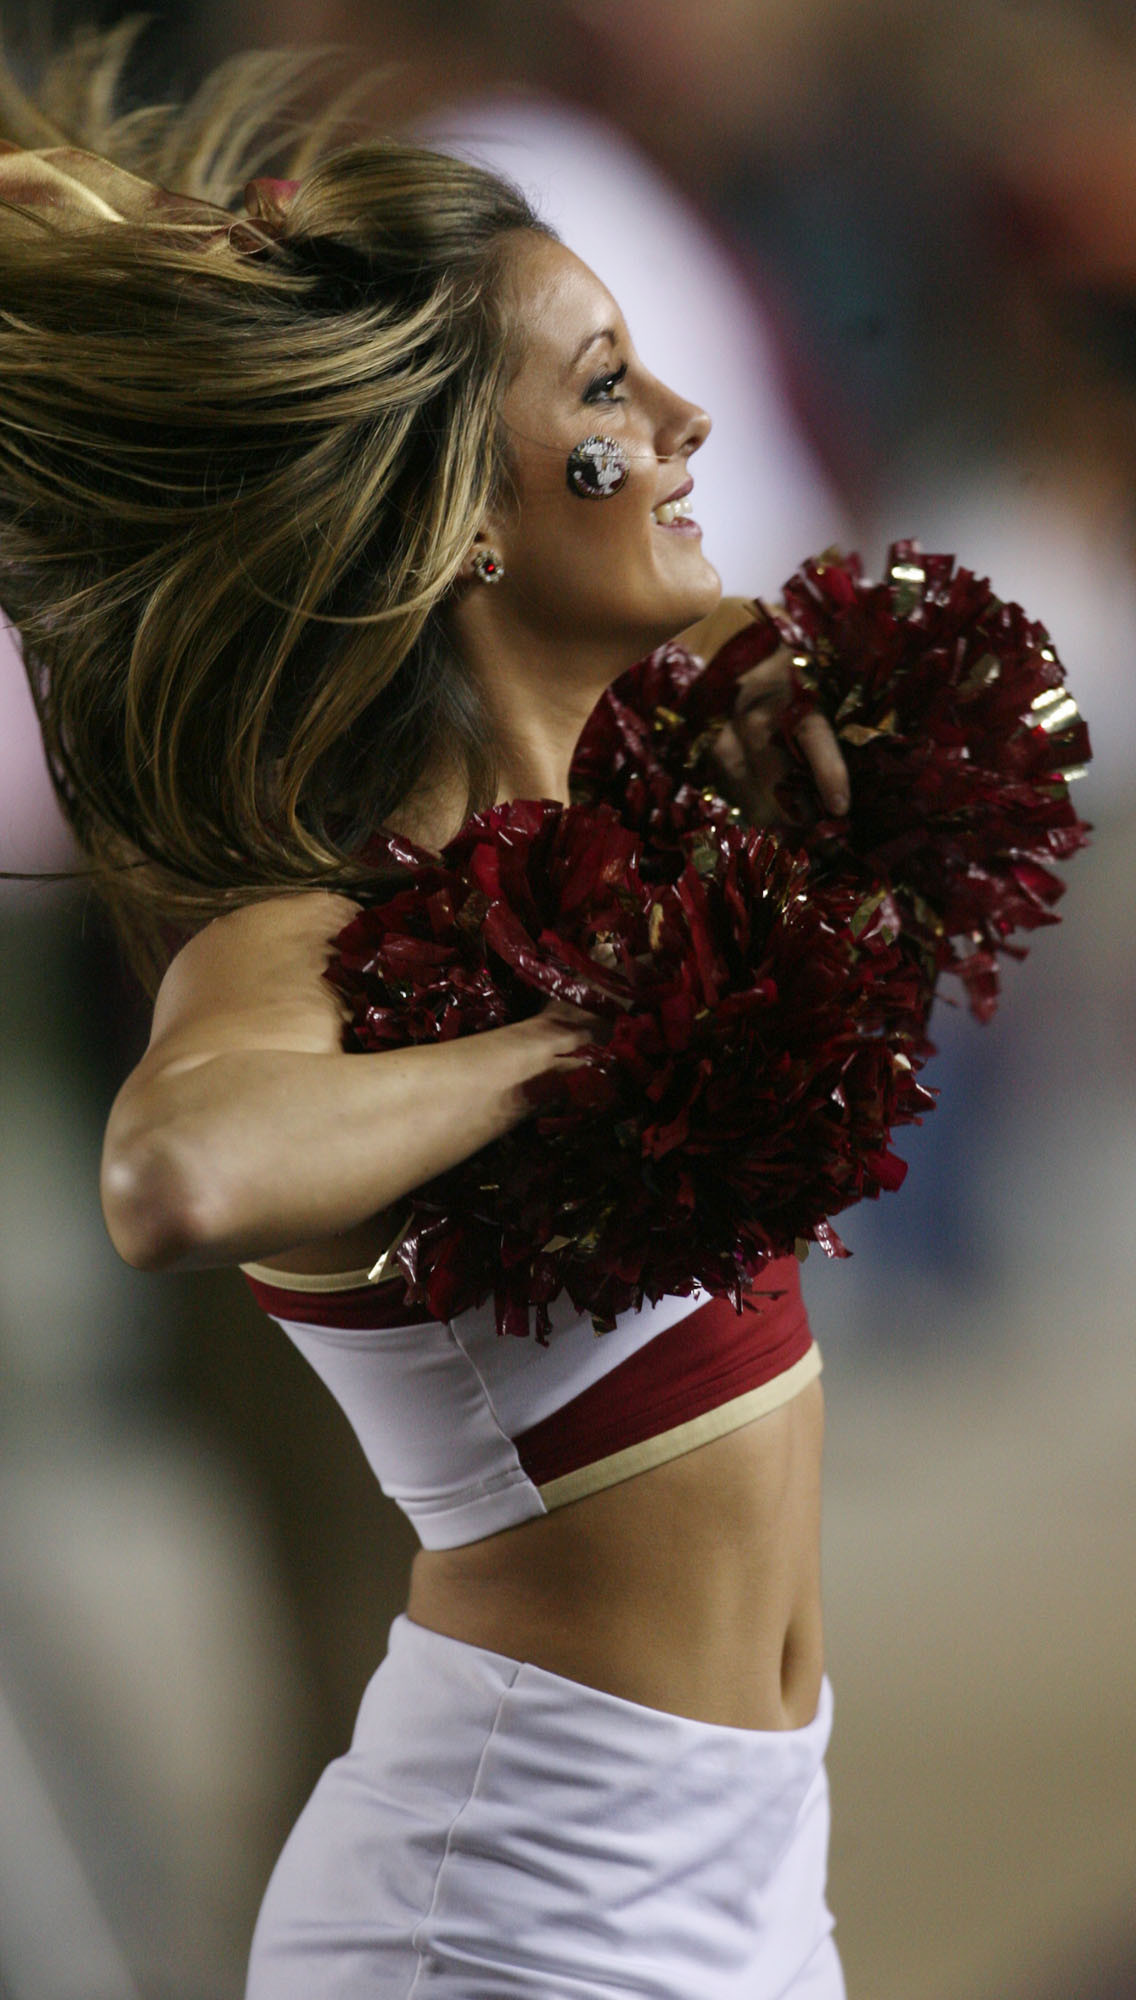 Photos: Florida State football fans and cheerleaders - Florida State vs. Virginia